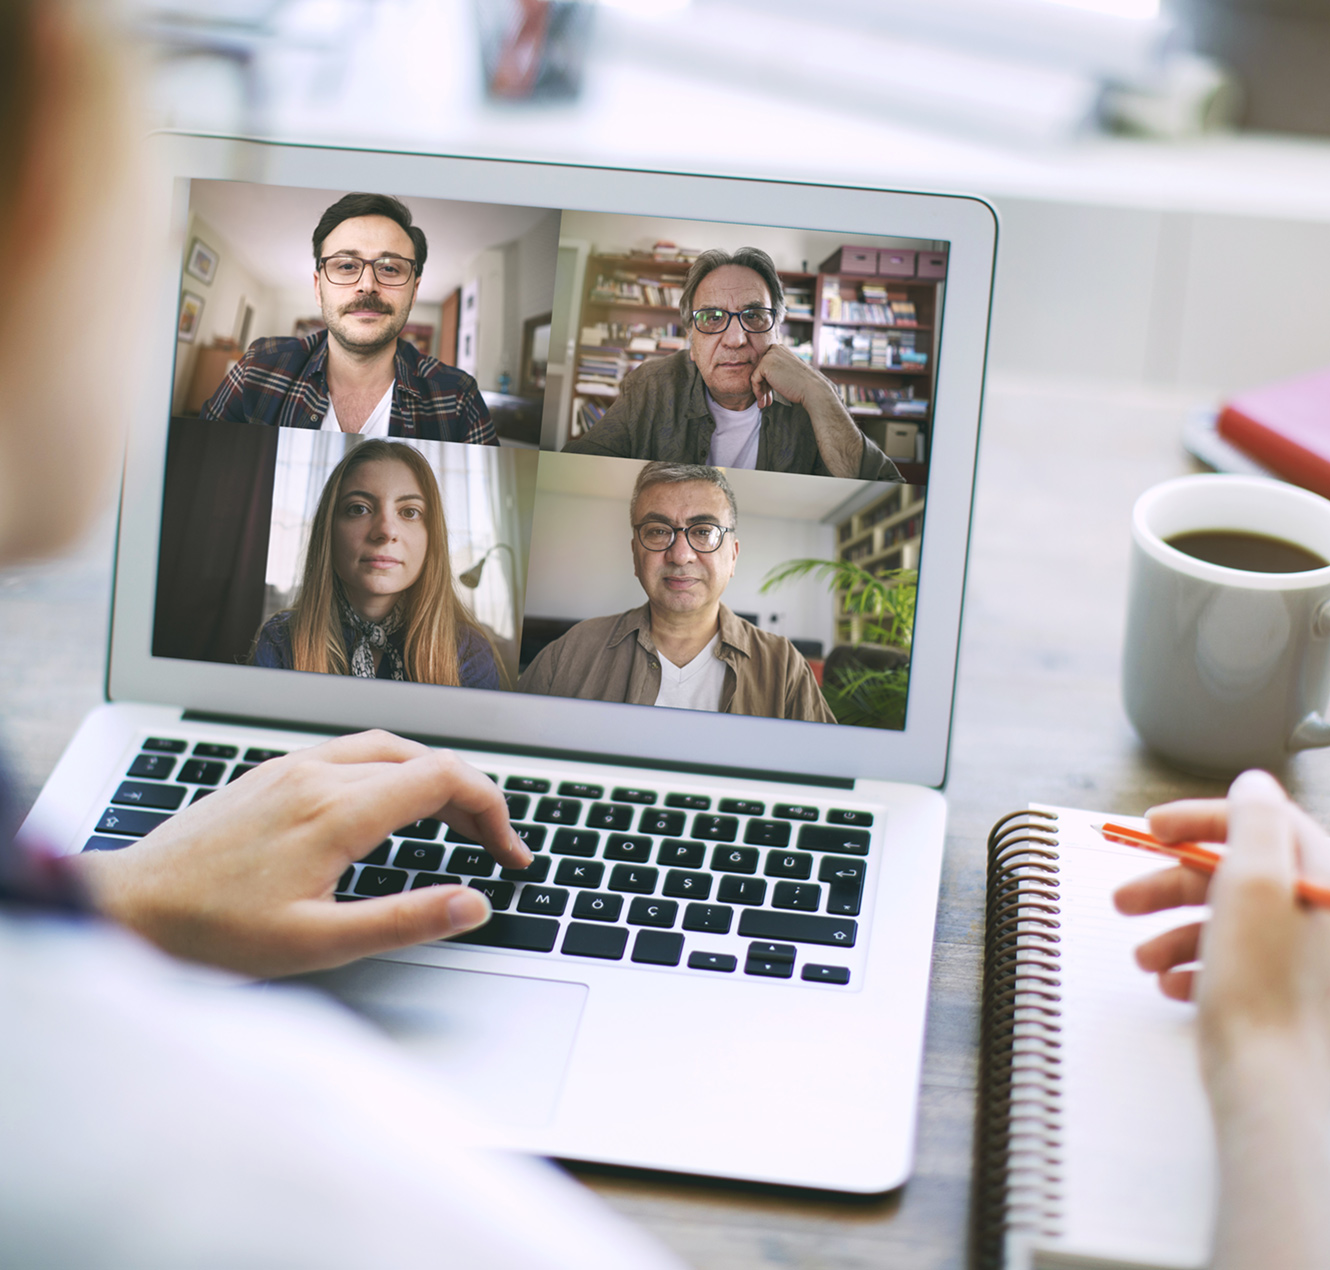 Virtual Learning Platforms to Boost Employee Experience & Engagements